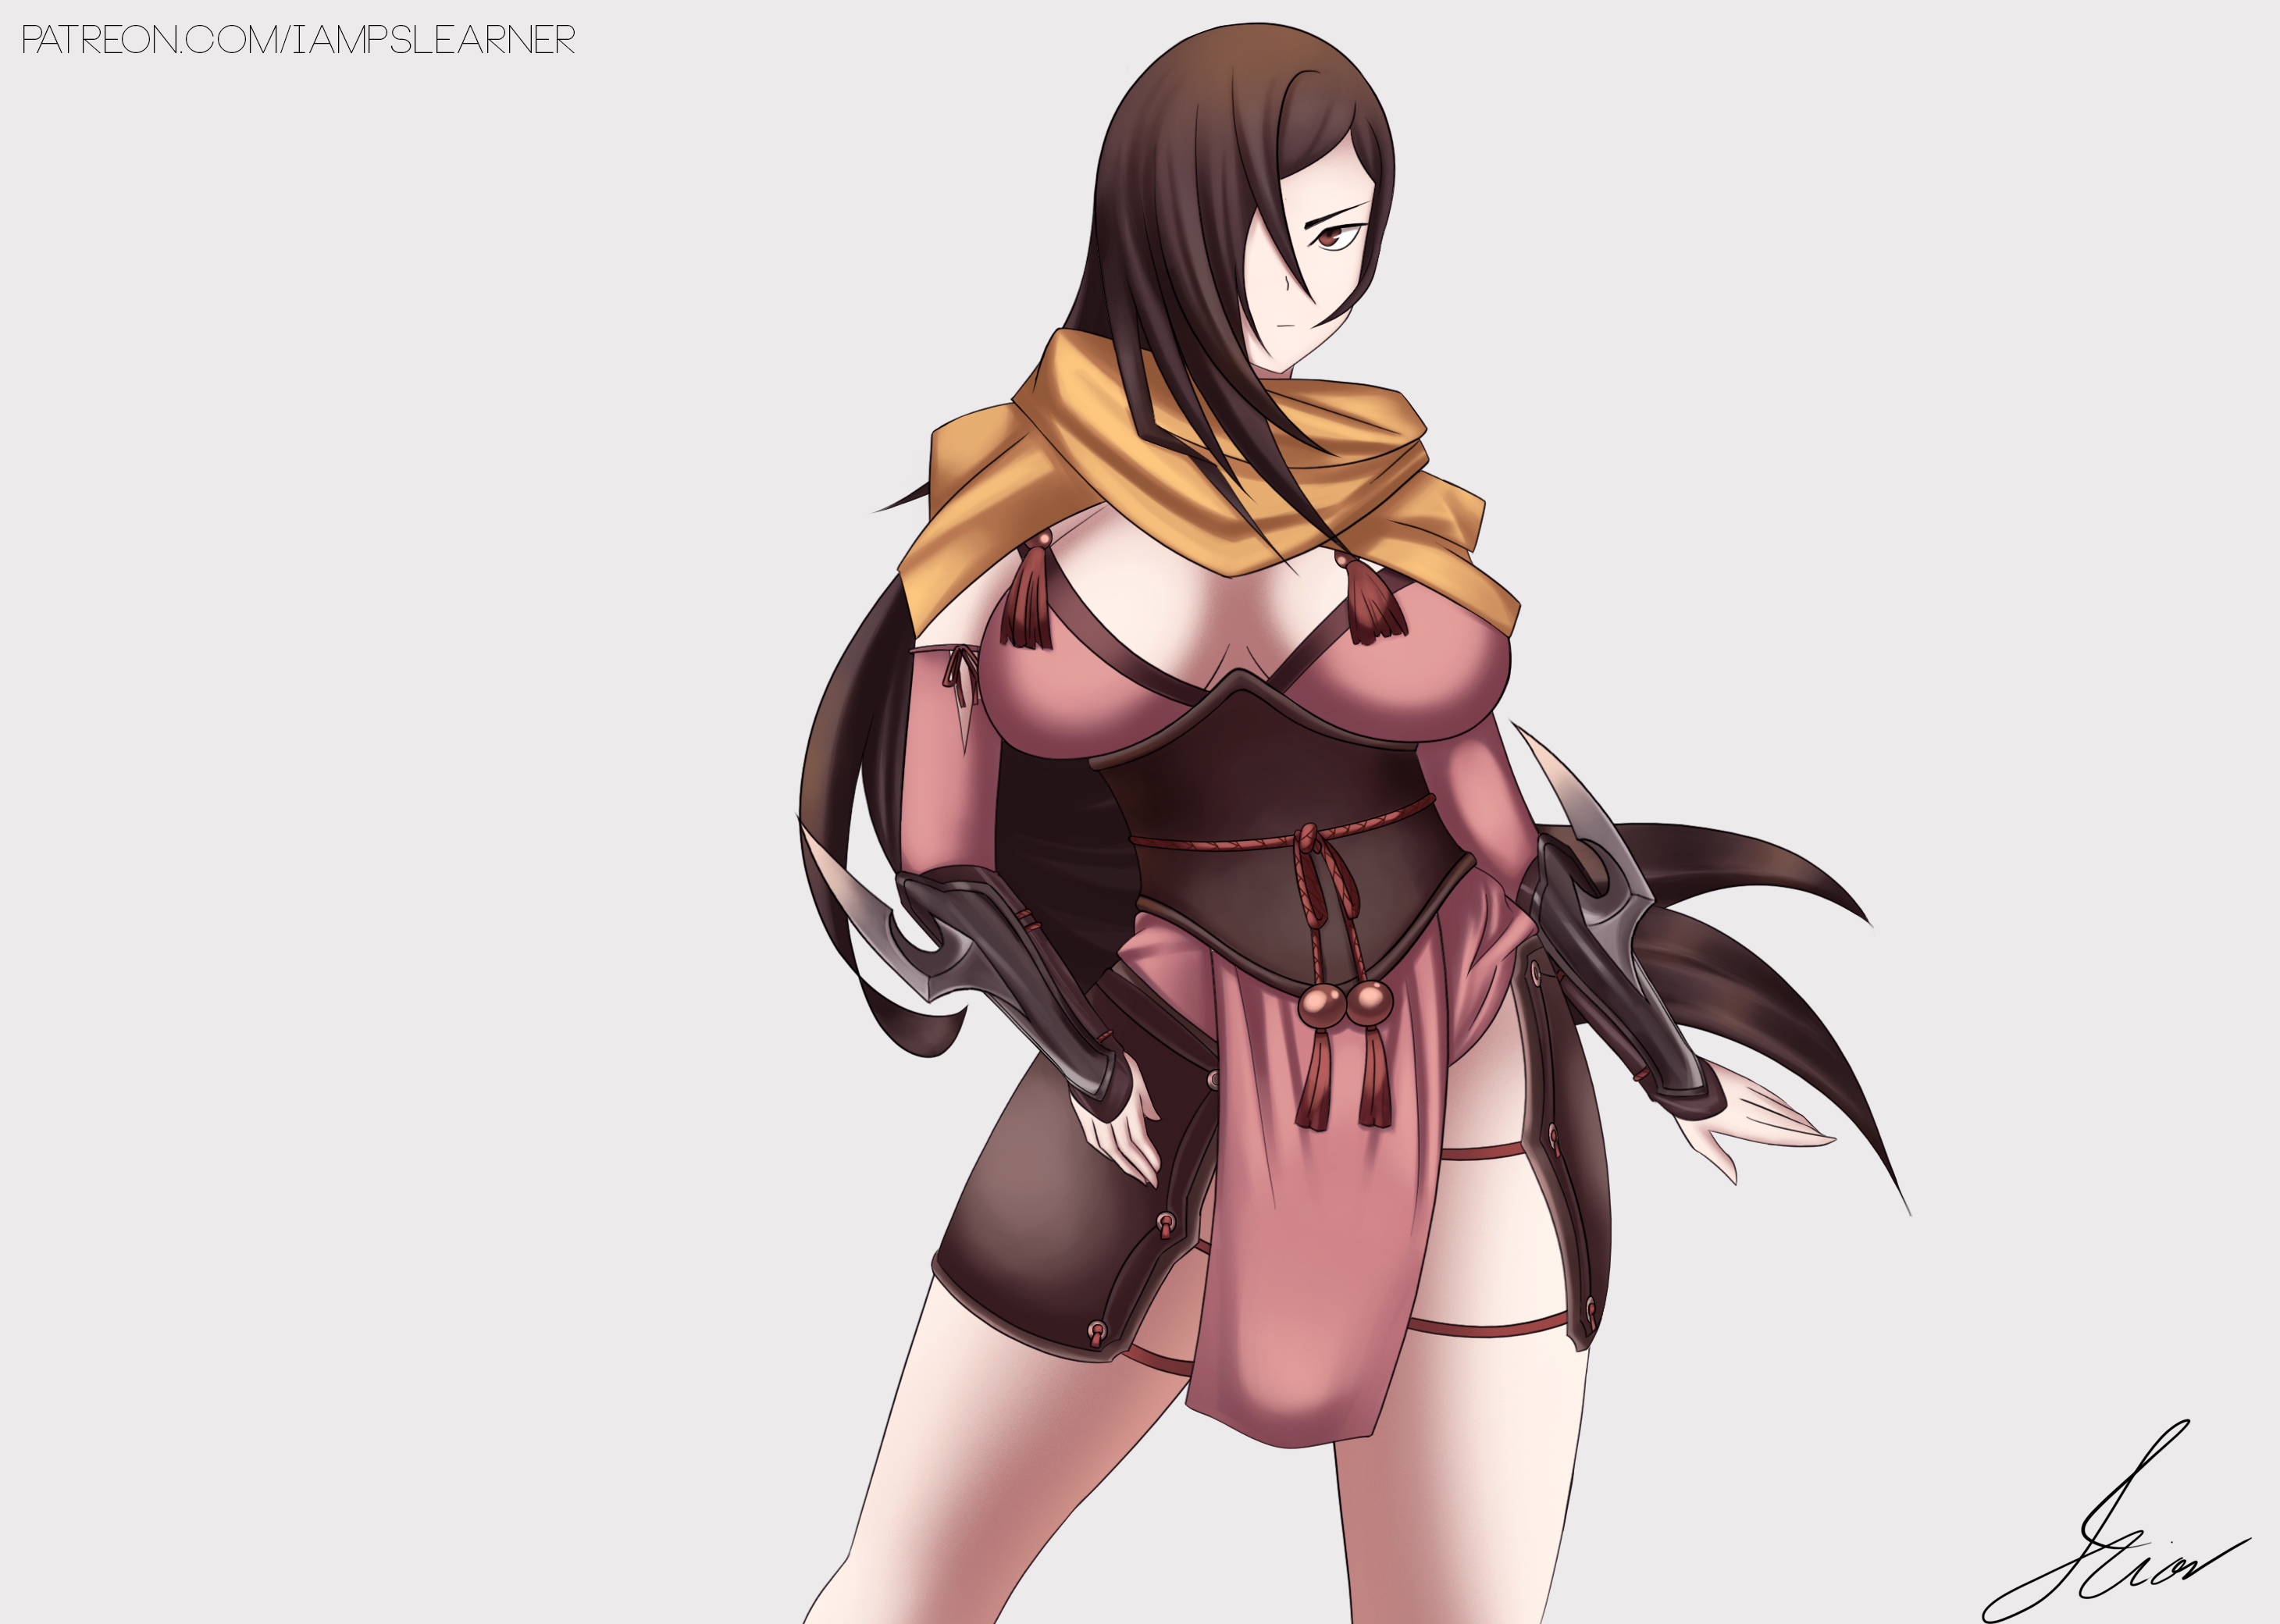 Kagero Fire Emblem By Icias Art On Newgrounds A kunoichi of hoshido, she is one of ryoma's personal retainers. kagero fire emblem by icias art on